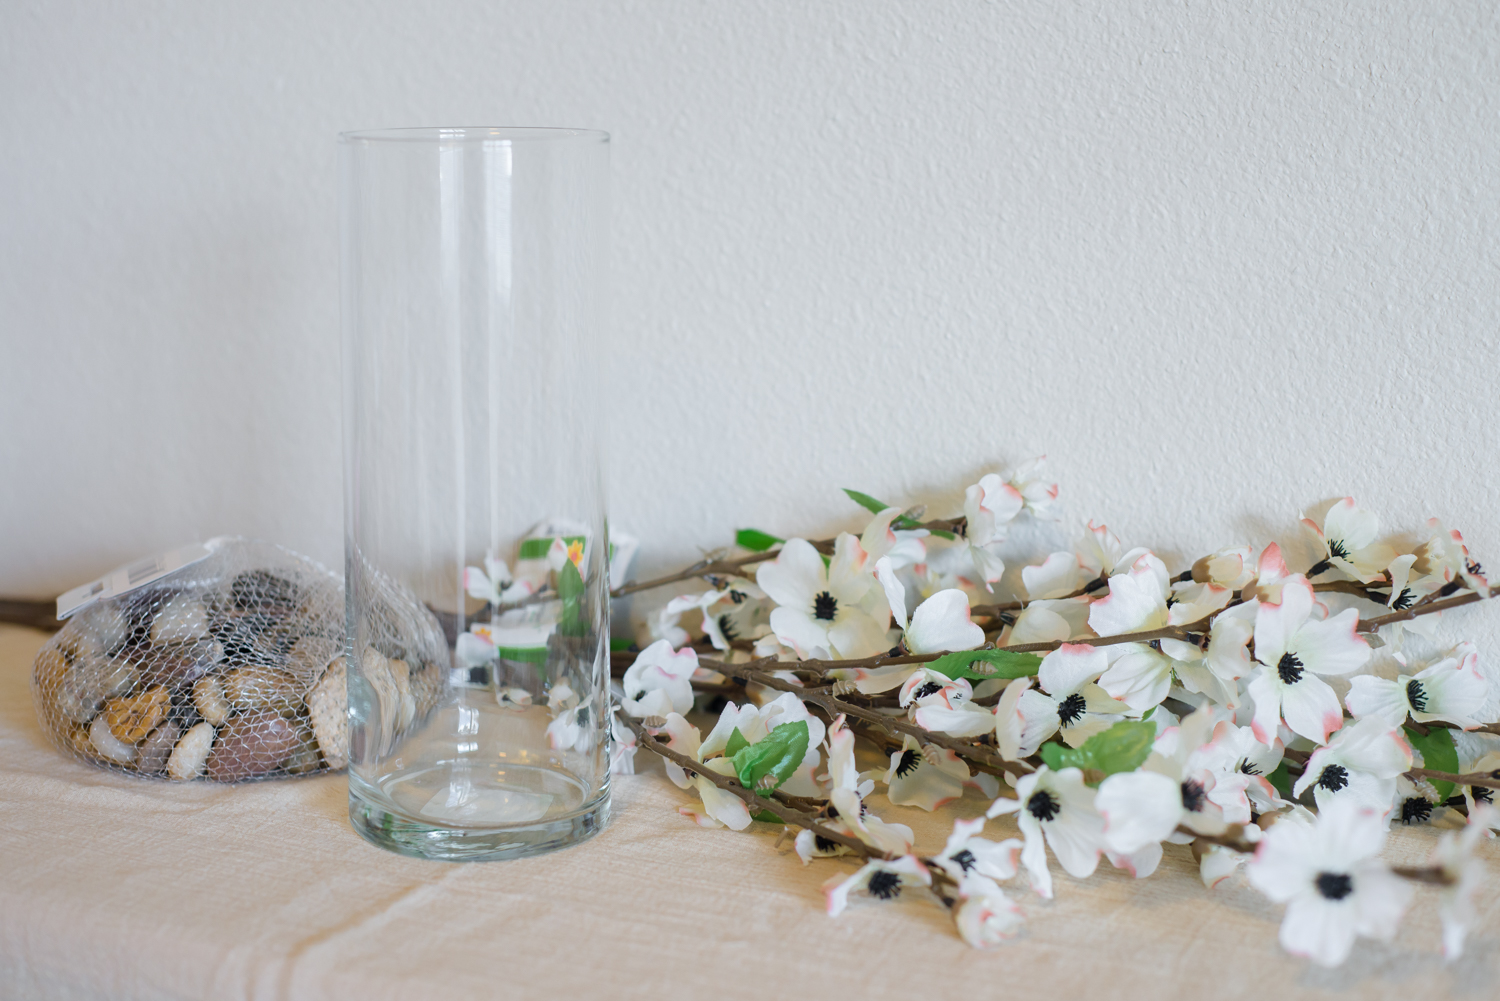 $6 Dollar Tree Floral Arrangement | Dogwood Blossom DIY